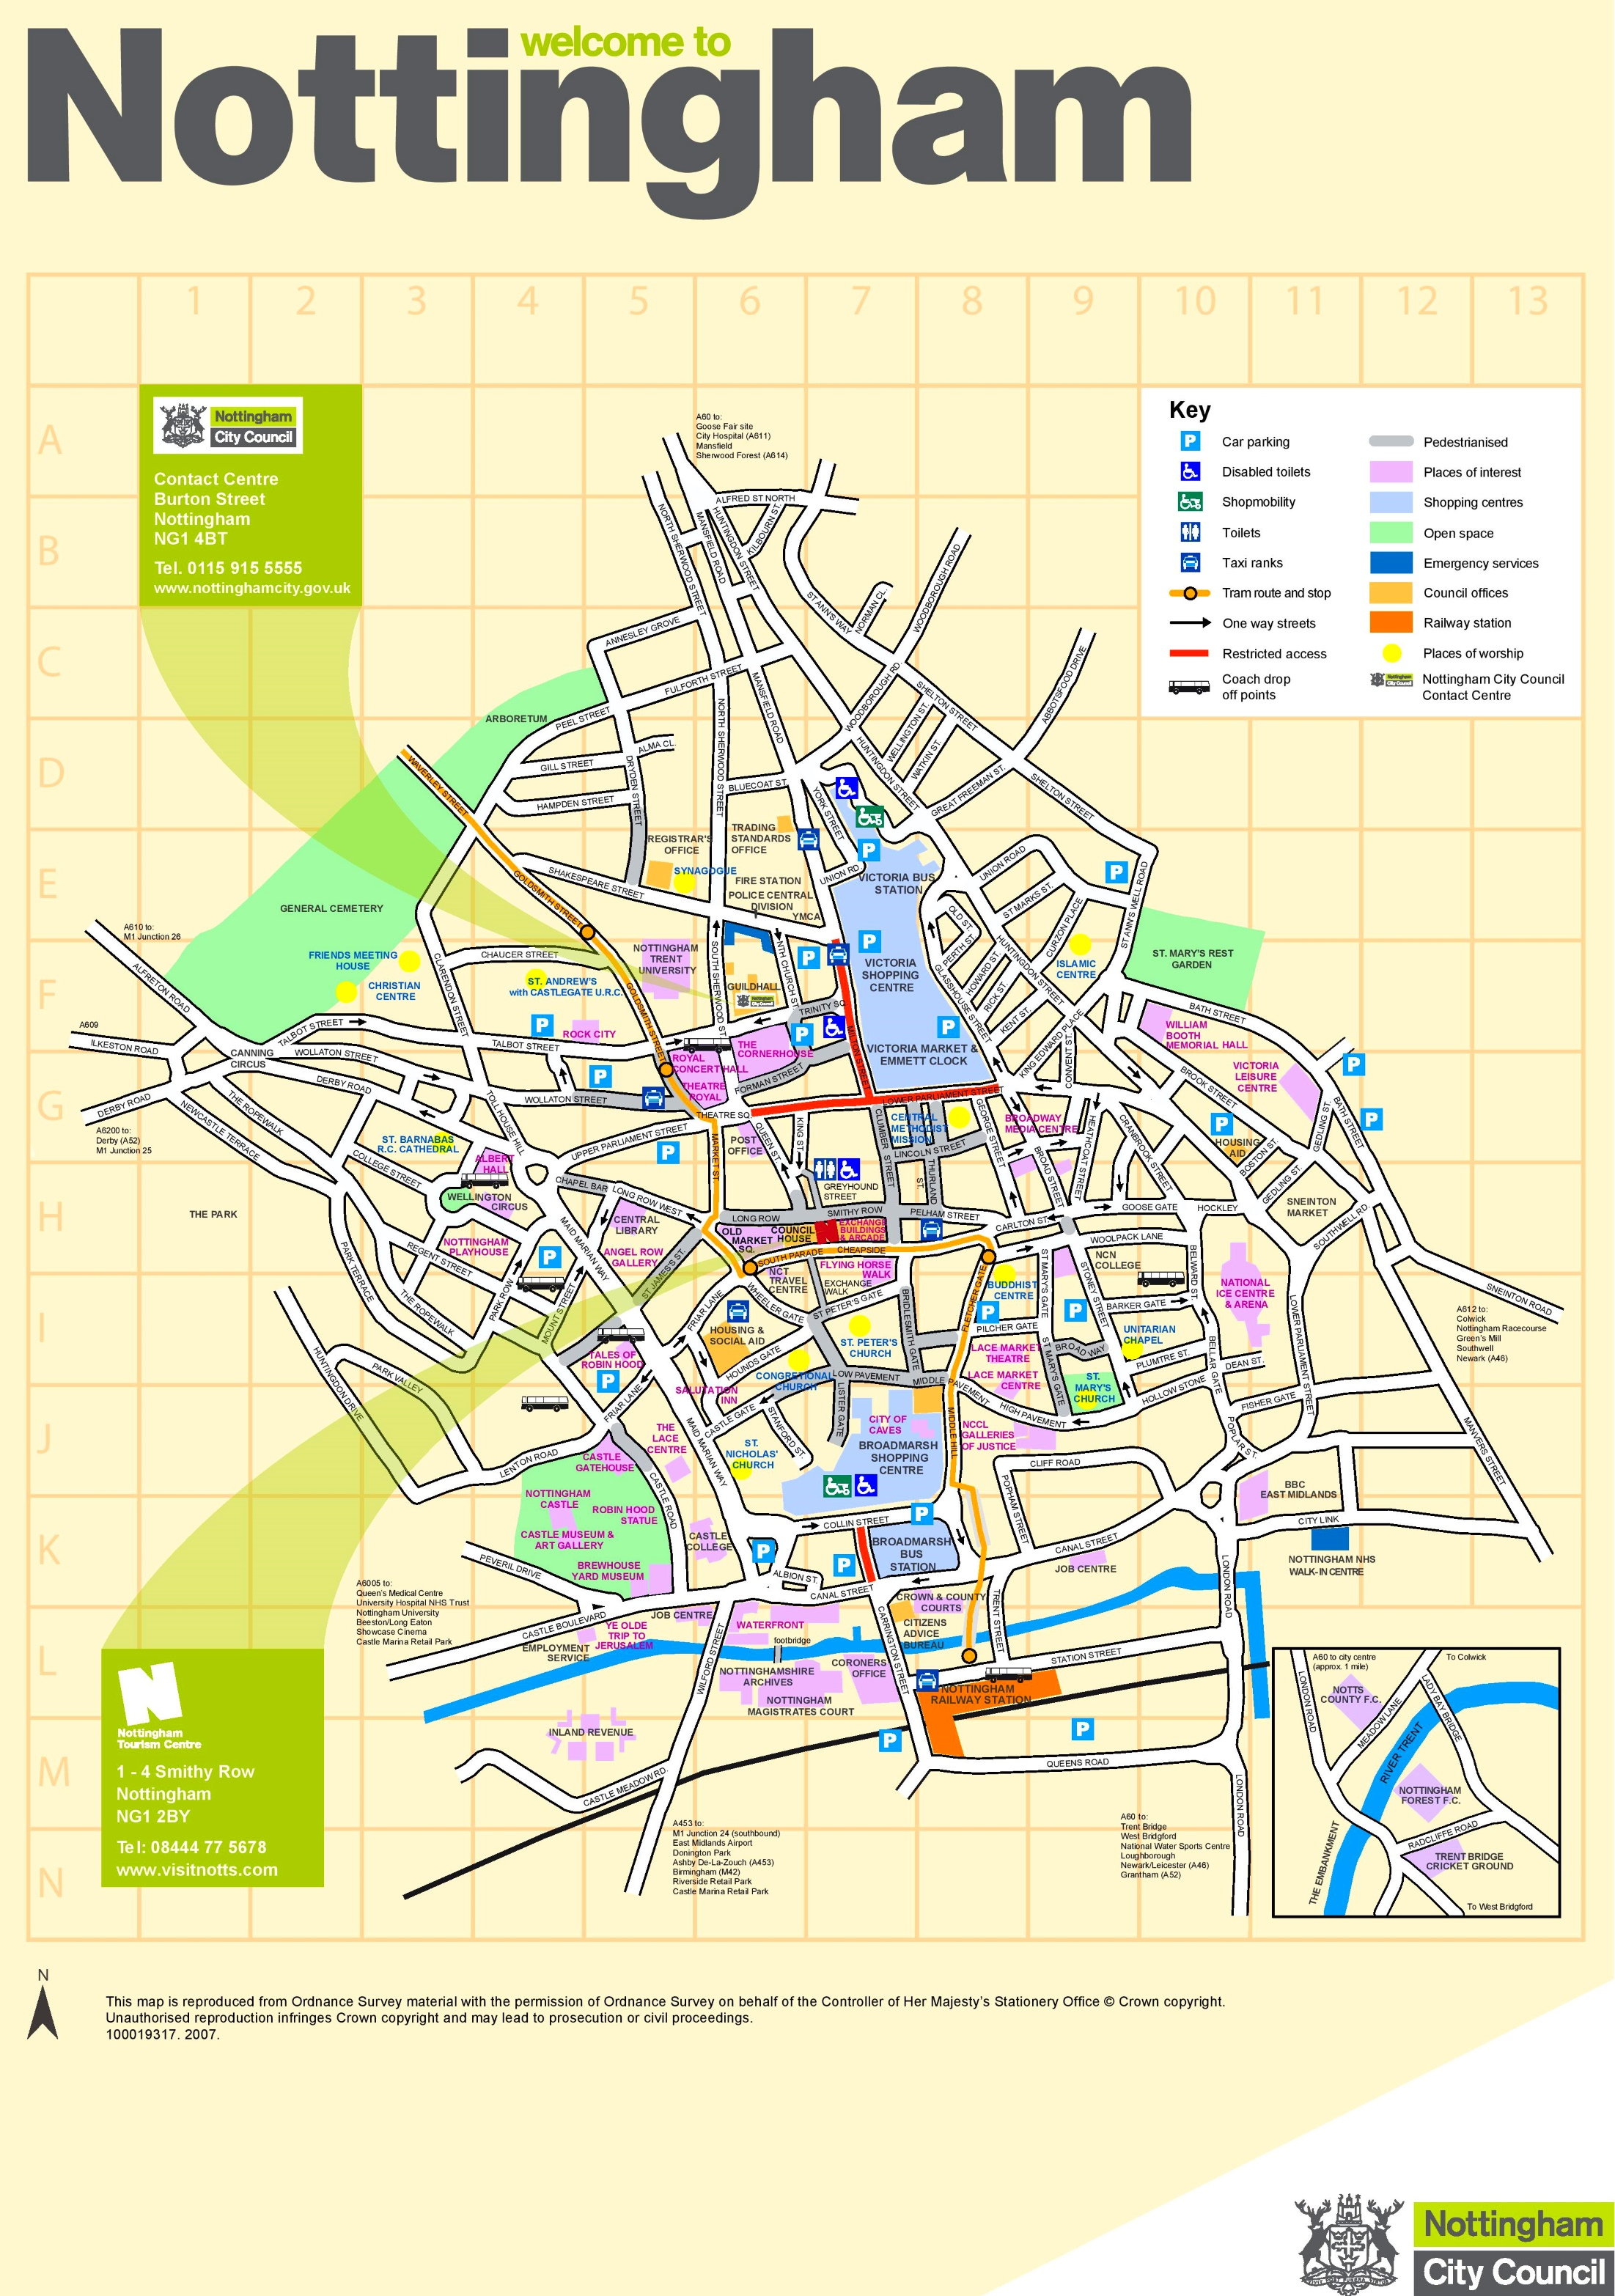 Nottingham City Hospital Map Nottingham tourist map Nottingham City Hospital Map